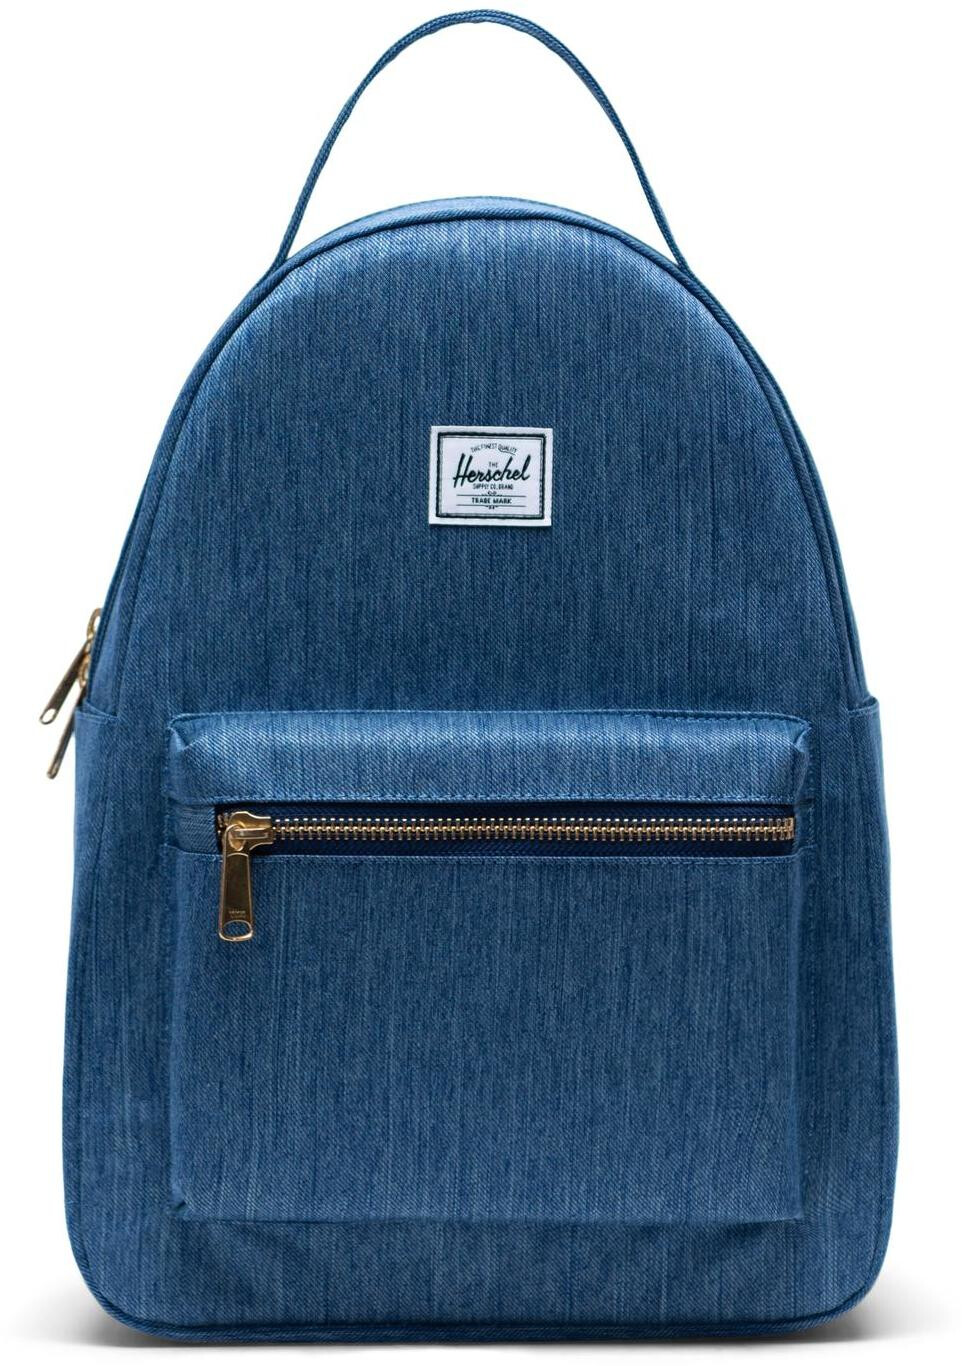 Herschel Nova Small Rygsæk 14l, faded denim (2019) | Travel bags